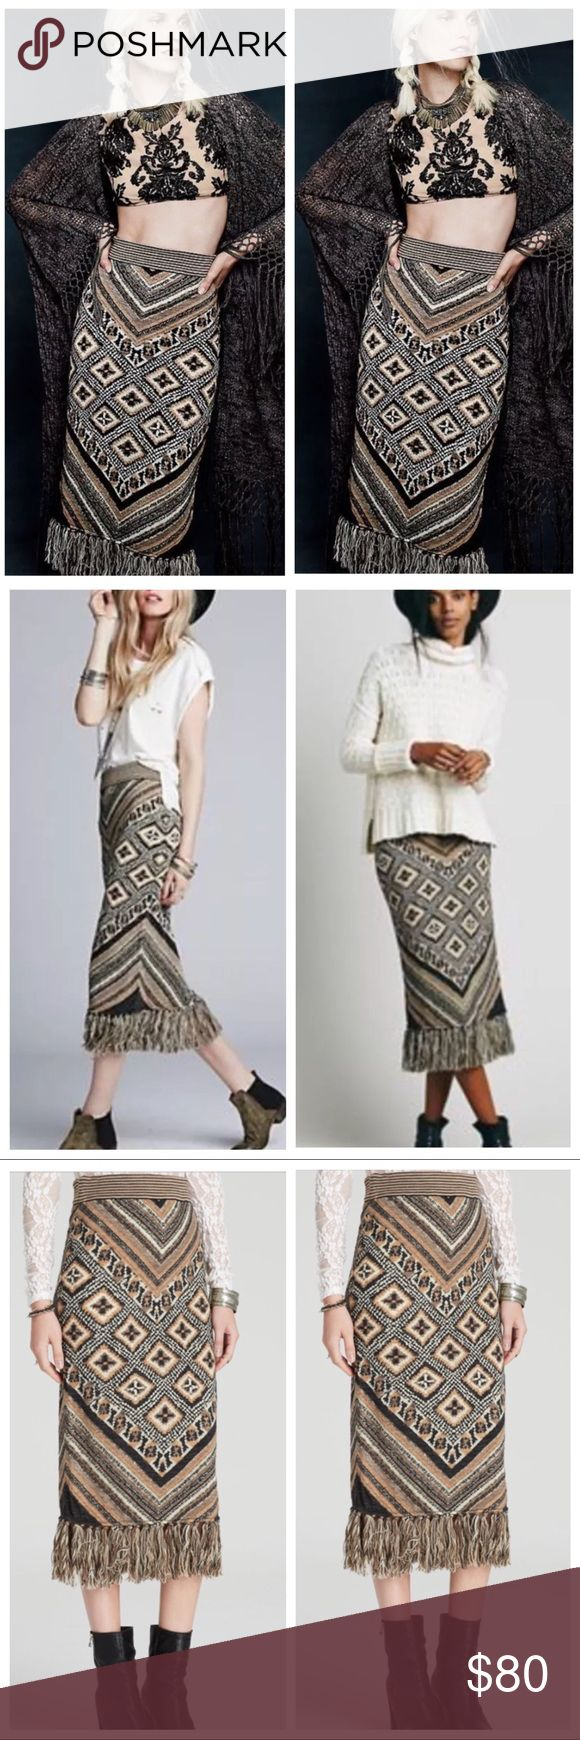 """FREE PEOPLE MIDI BLANKET skirt FRINGE pencil TUBE Free people MAGIC CARPET RIDE SKIRT! Super chic downtown boho. Blanket knit sweater Pencil wiggle skirt. Very soft and has stretch! With elastic waist and fringe edging. Amazing pattern in earthtone hues: black, dusty brown, cream, light caramel. Waist 15"""" across, 33.5"""" long (includes fringe). Medium/large. 0127 Free People Skirts Midi"""